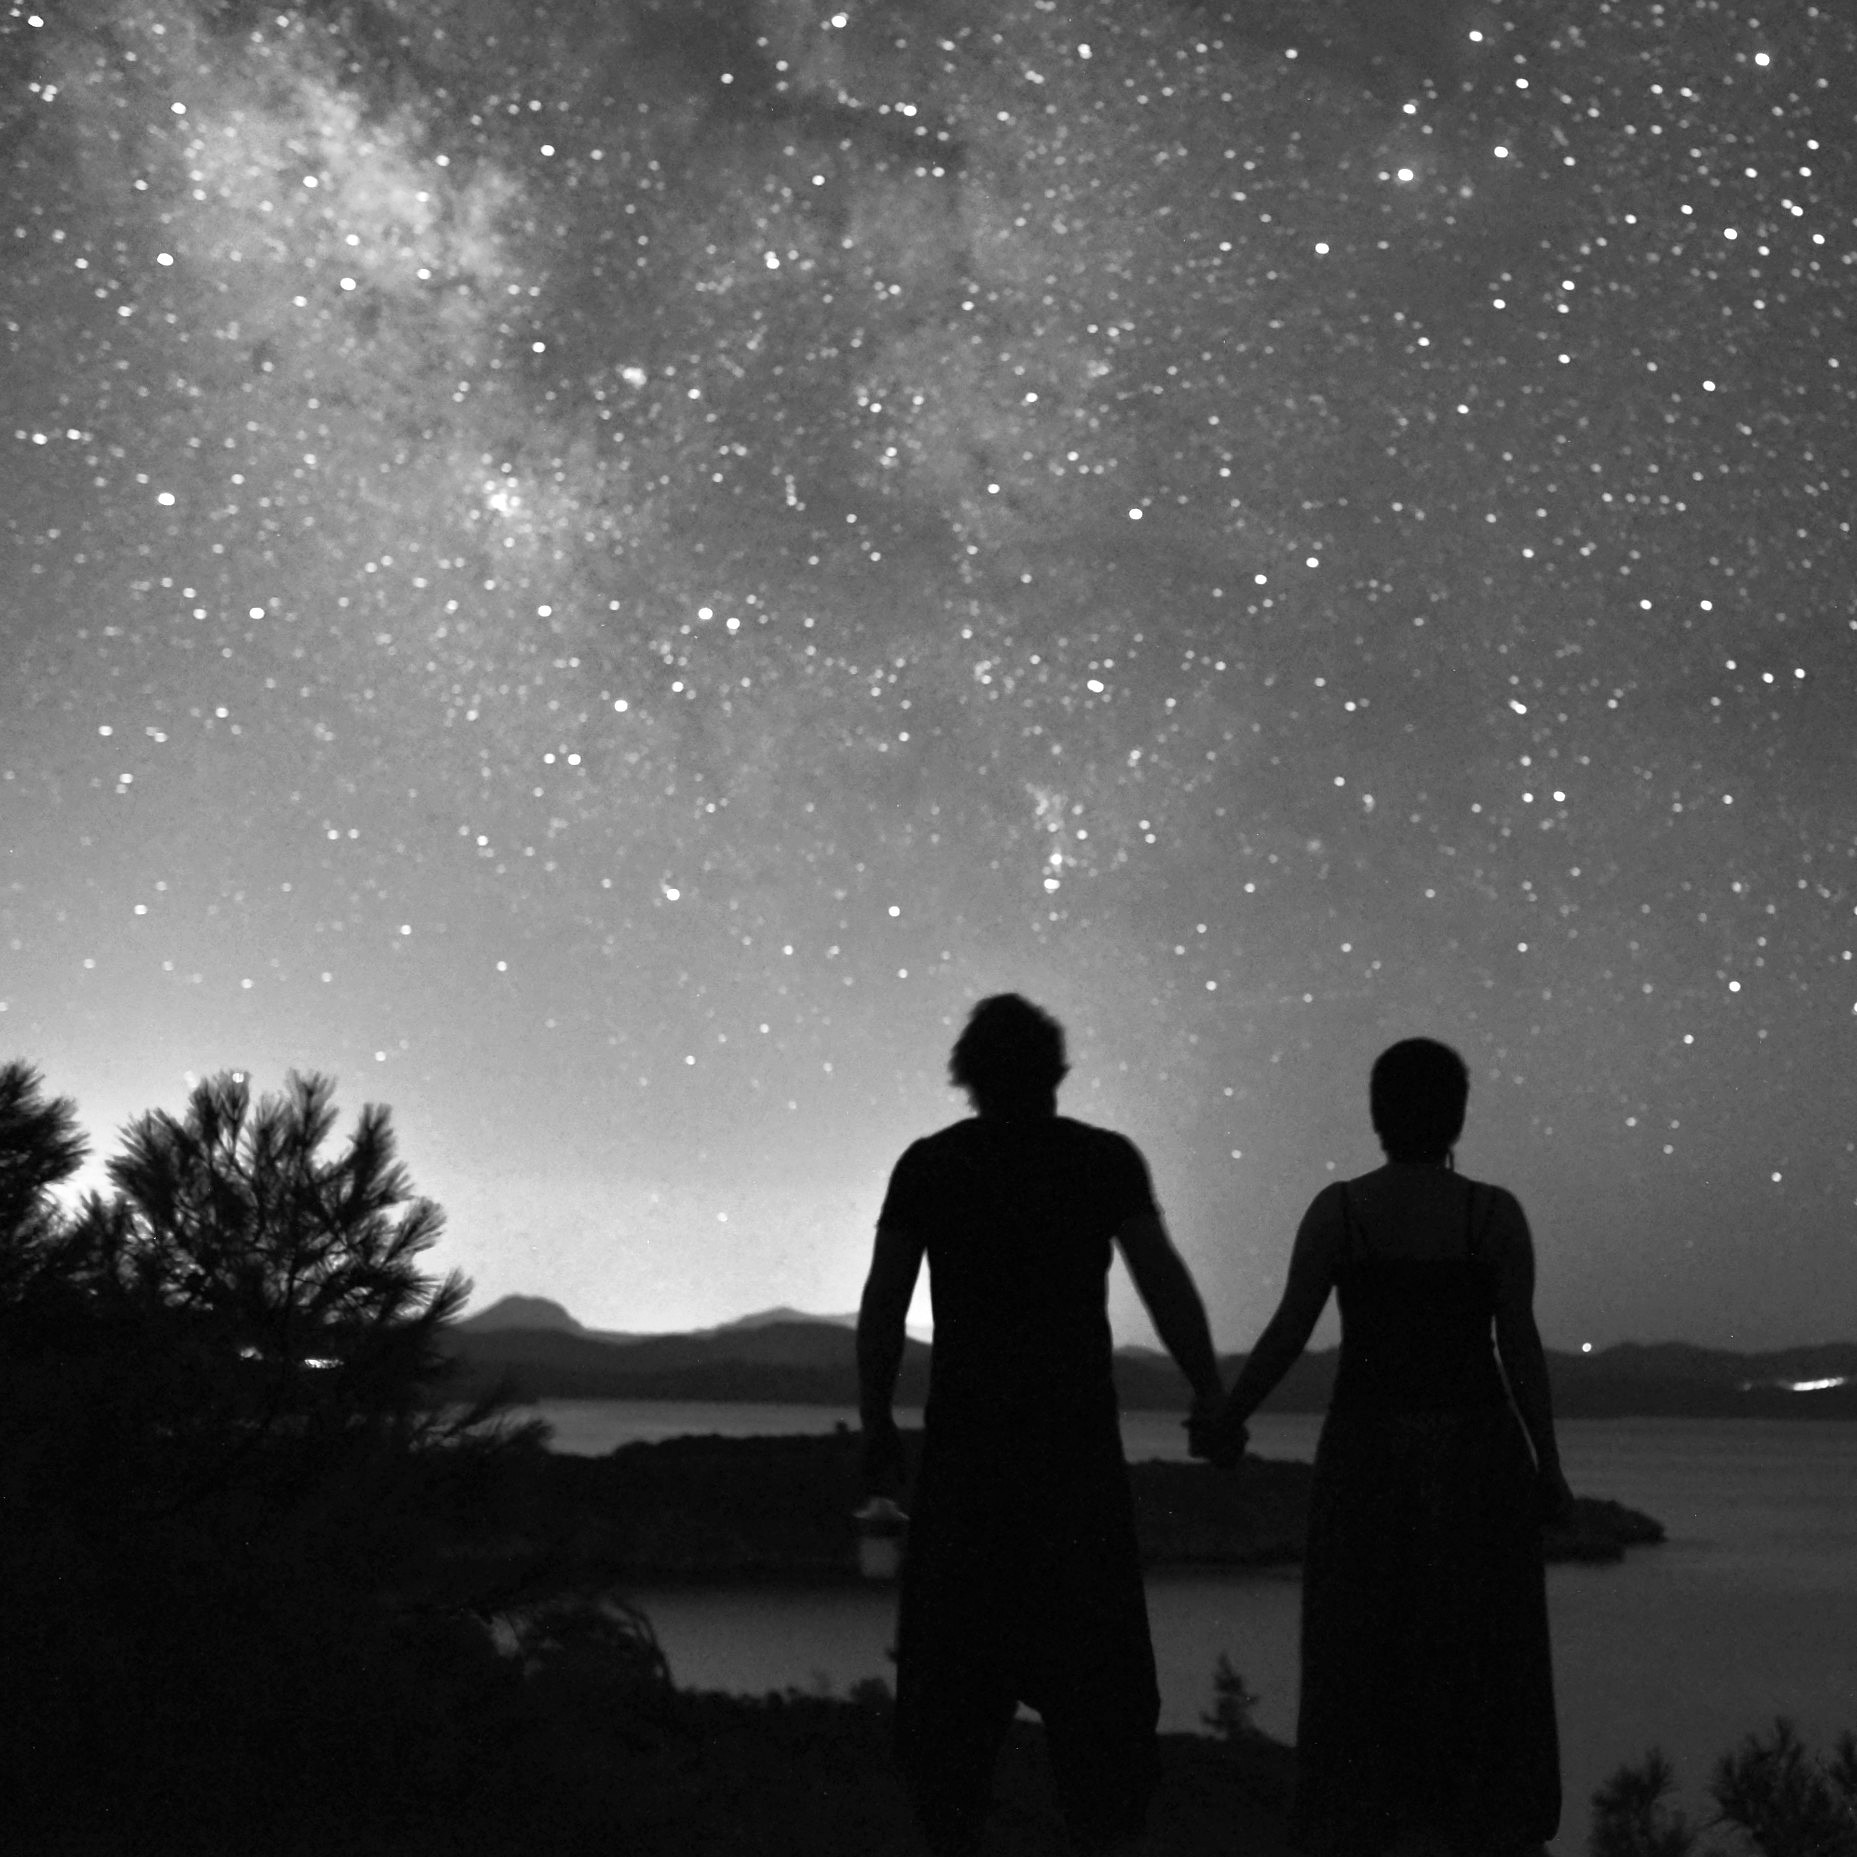 #freetoedit #bw #bnw #longexposure #blackandwhite #milkyway #stars #bwphotography #bnwphotography #love